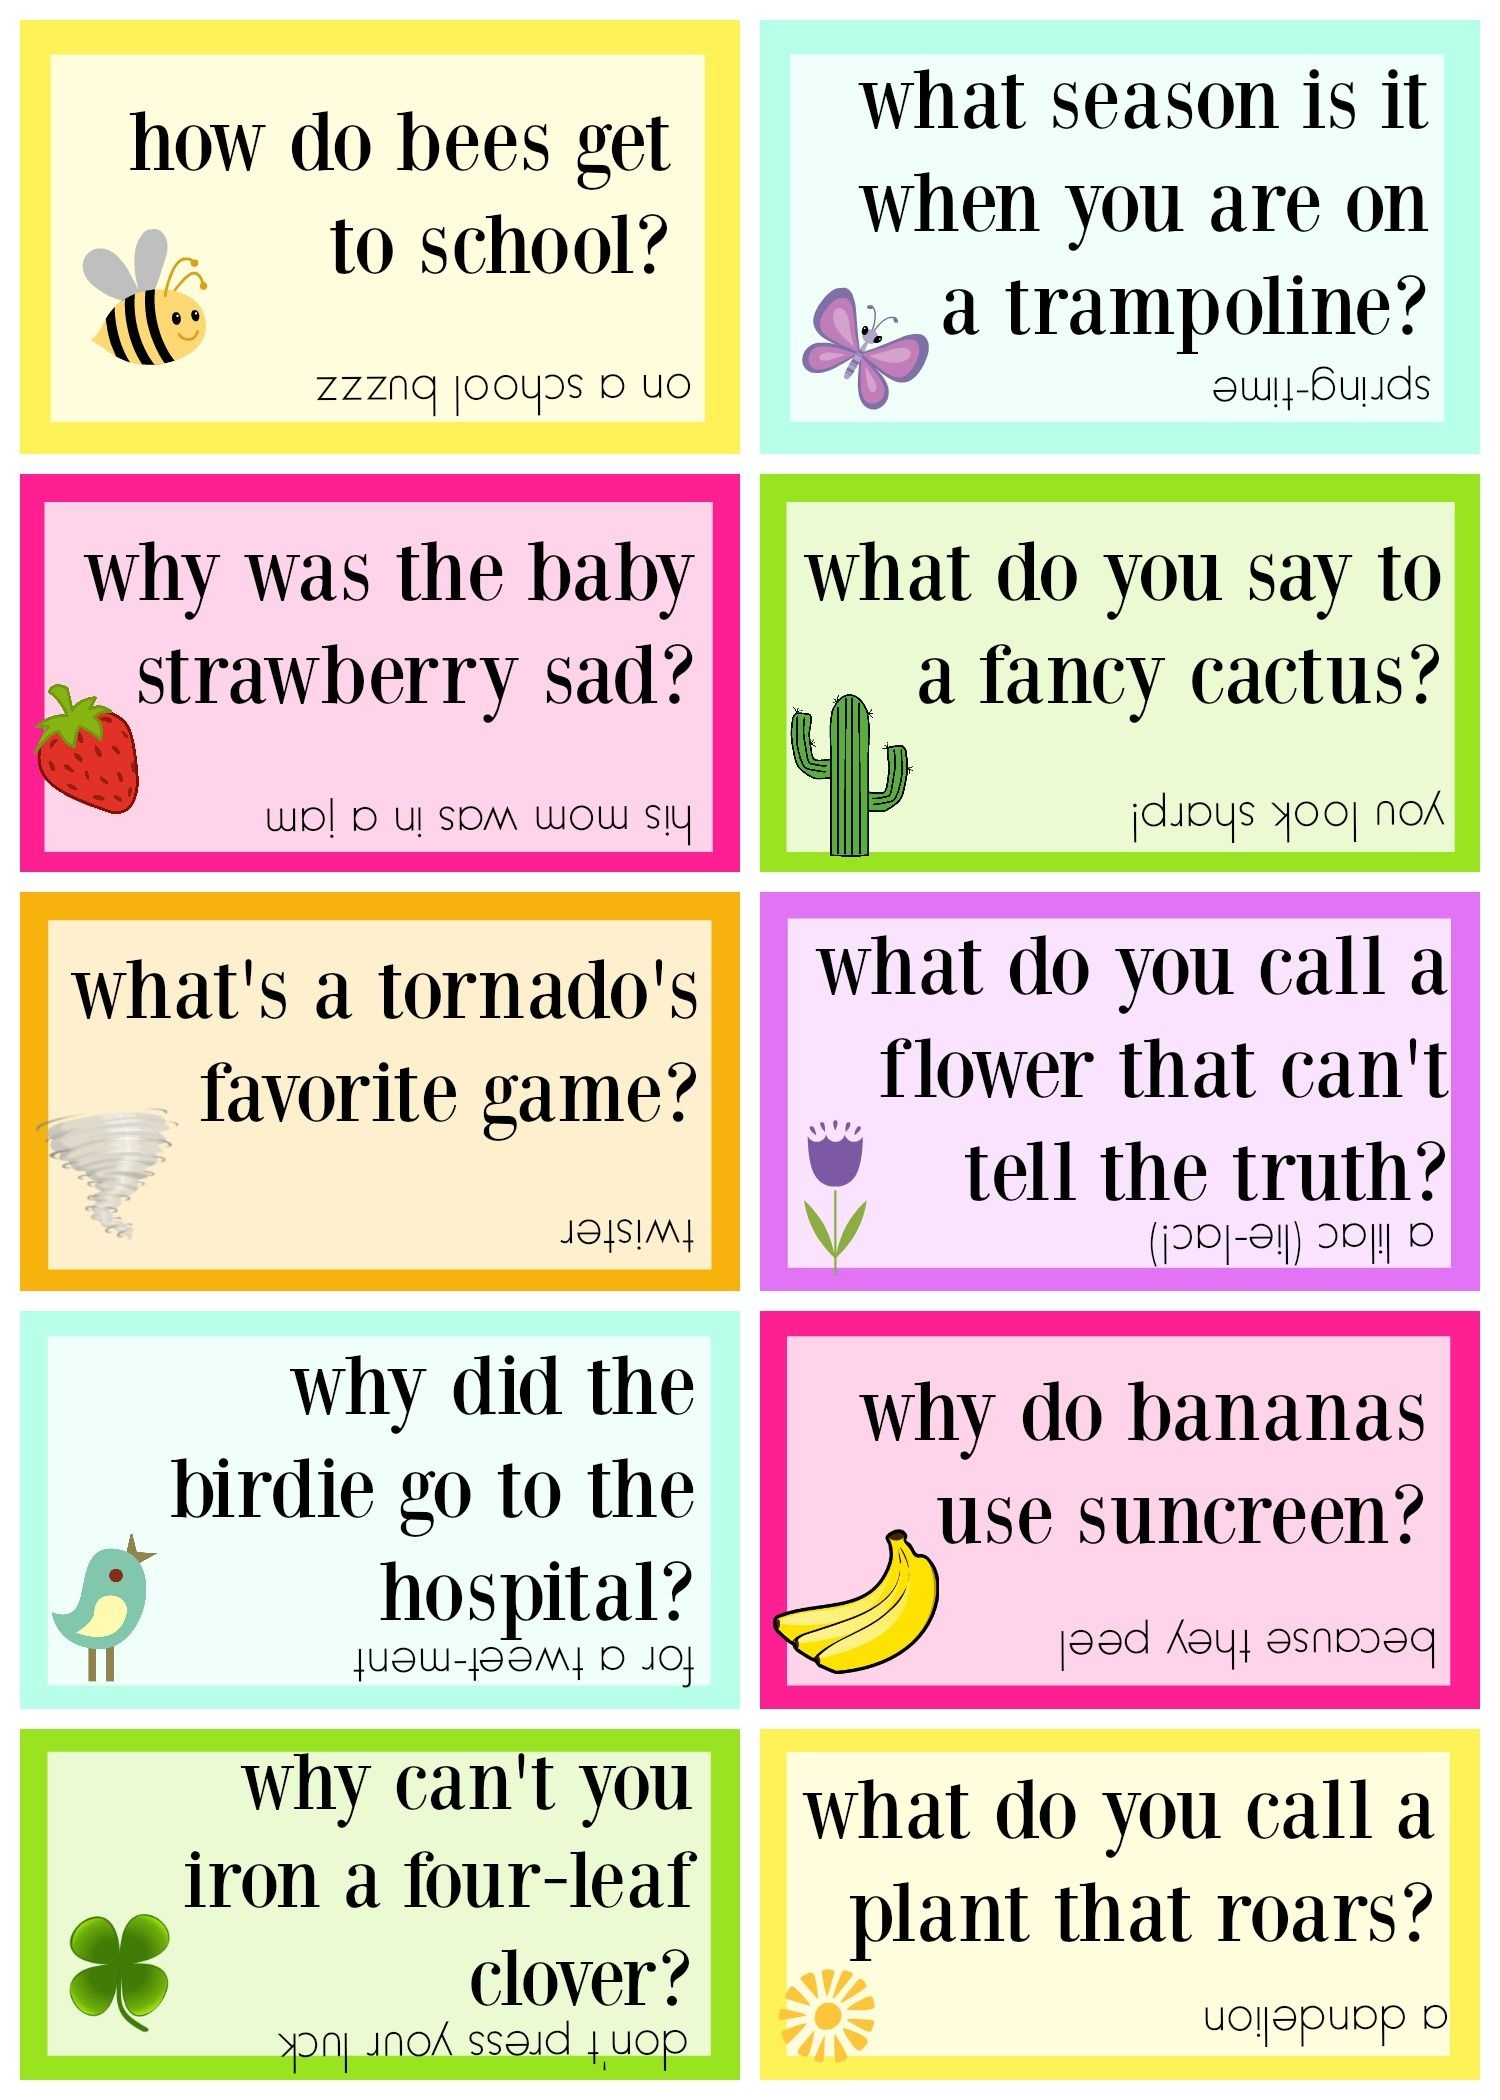 Lunch Box Jokes For Spring, Free Printable | Lunch Box Jokes And - Free Printable Jokes For Adults